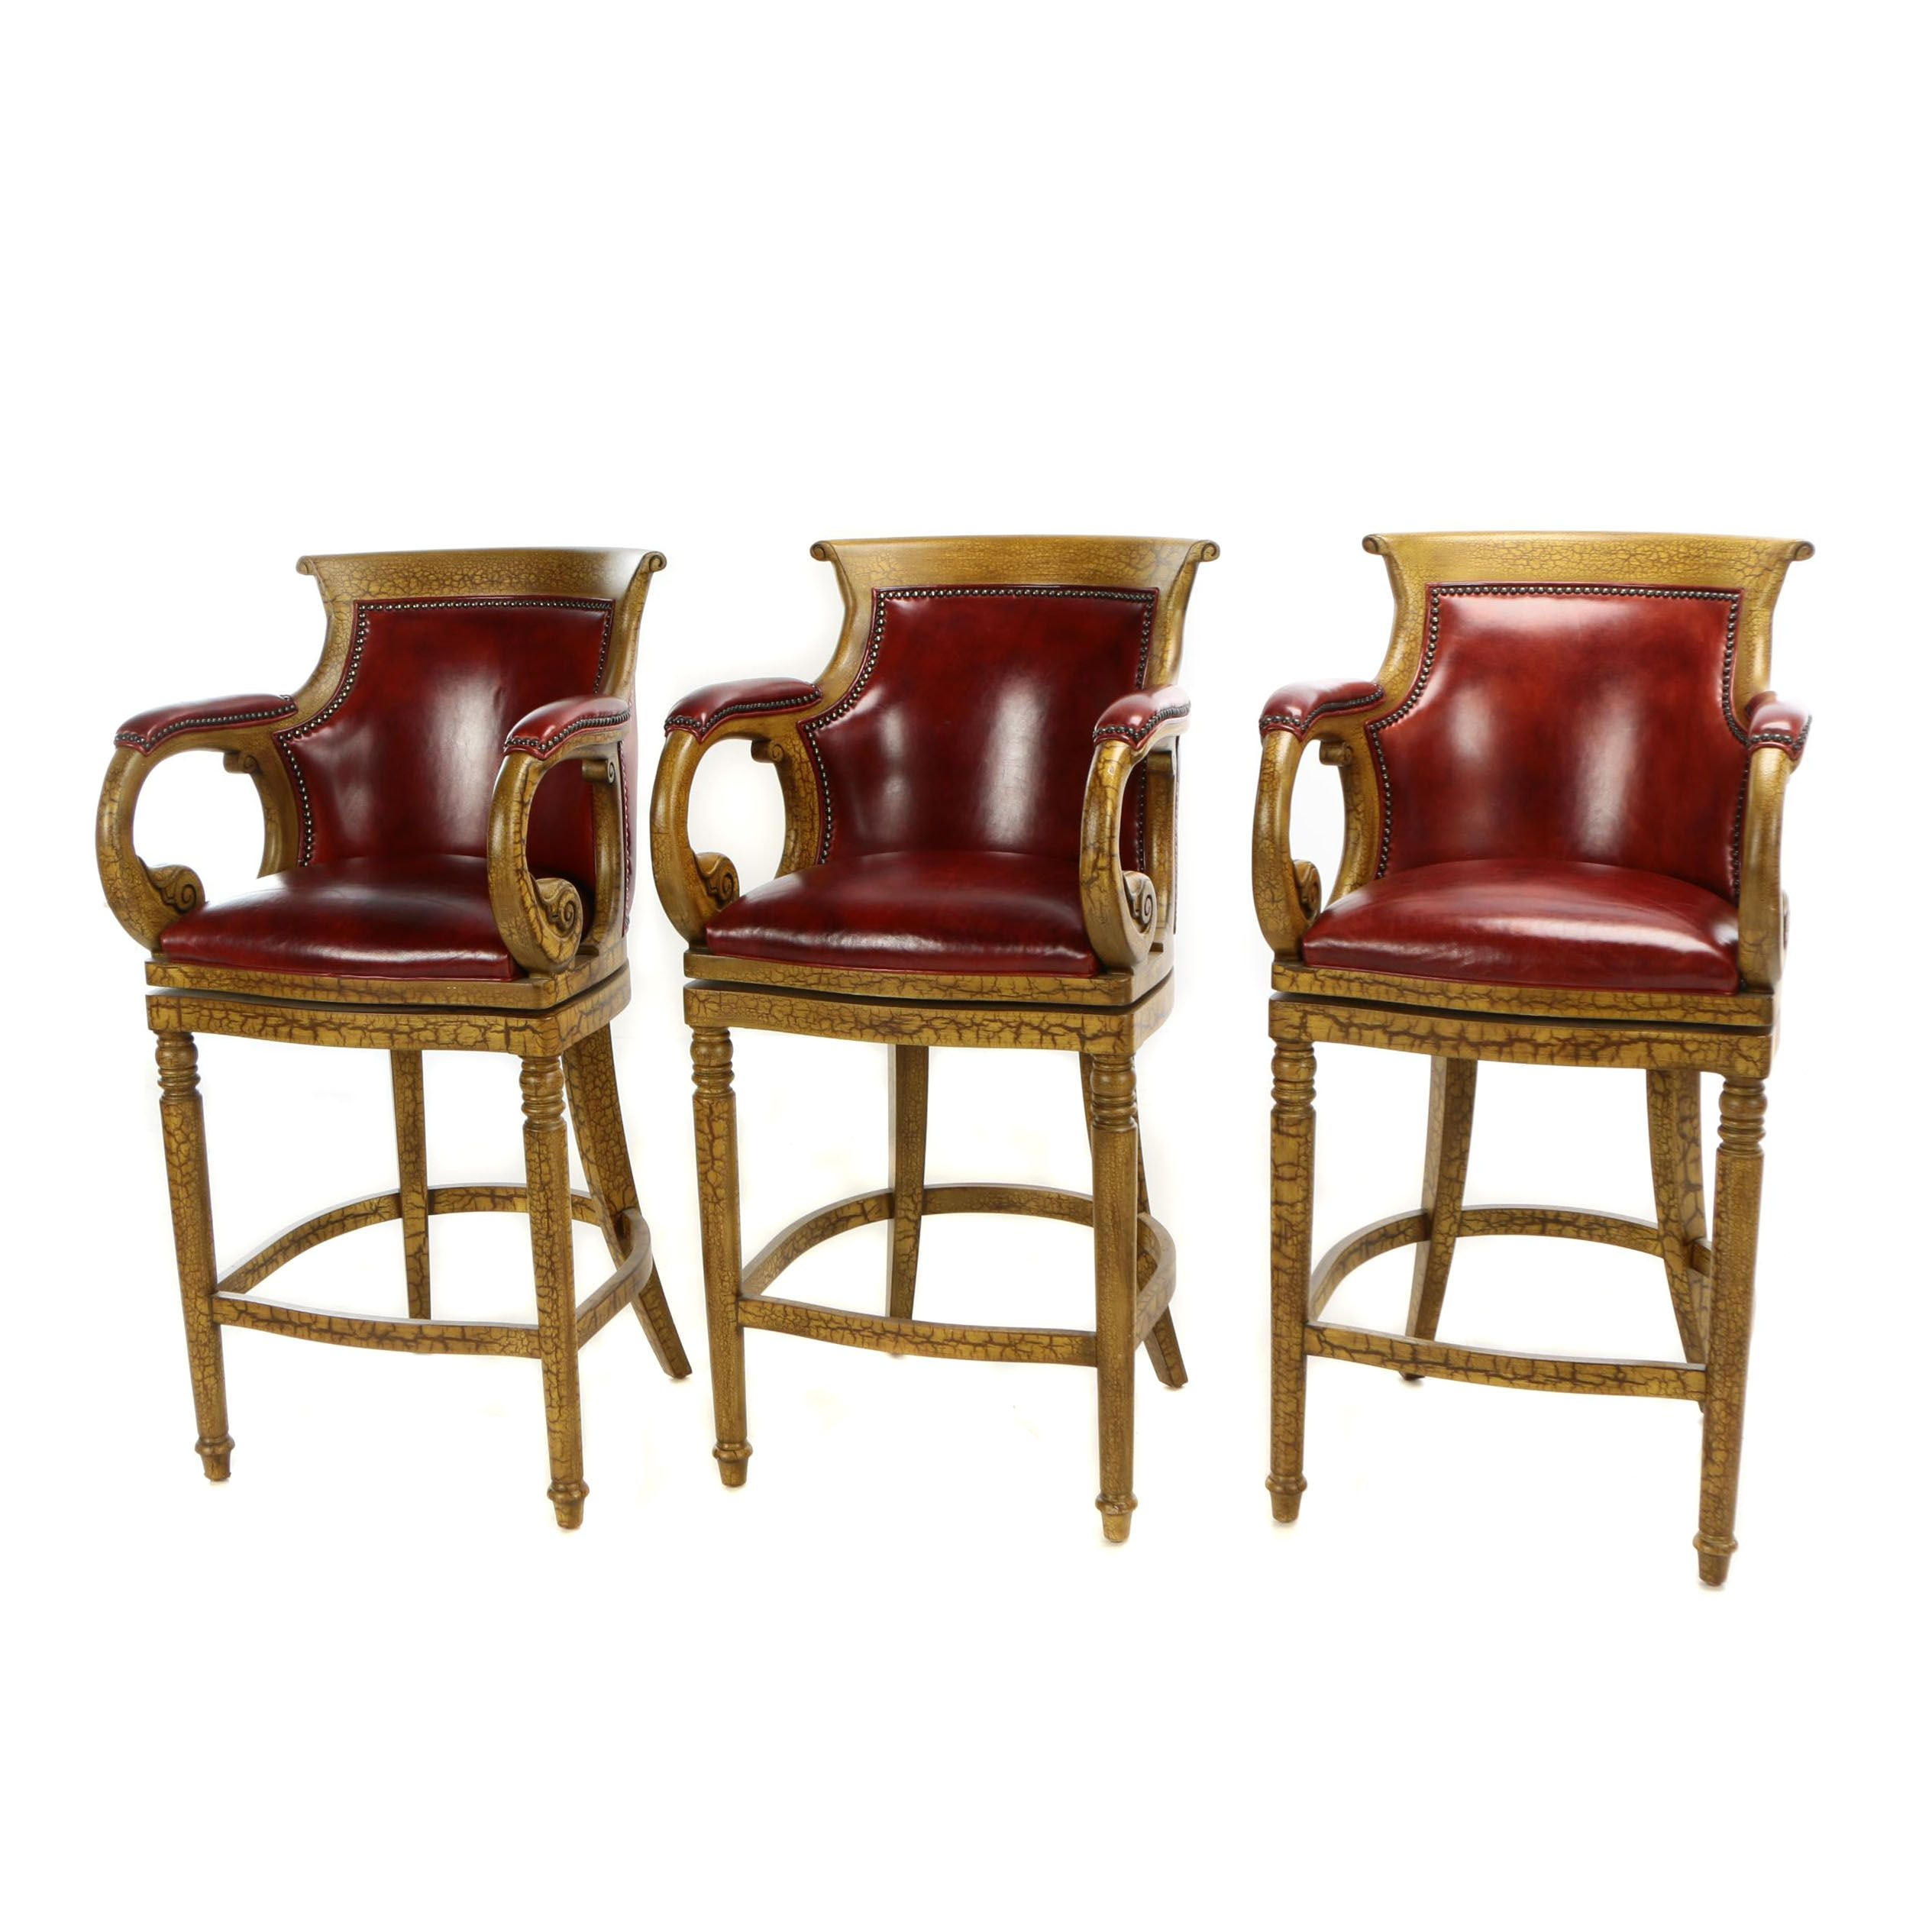 Three Hancock & Moore Yellow-Painted and Dark Red Leather Swivel Barstools